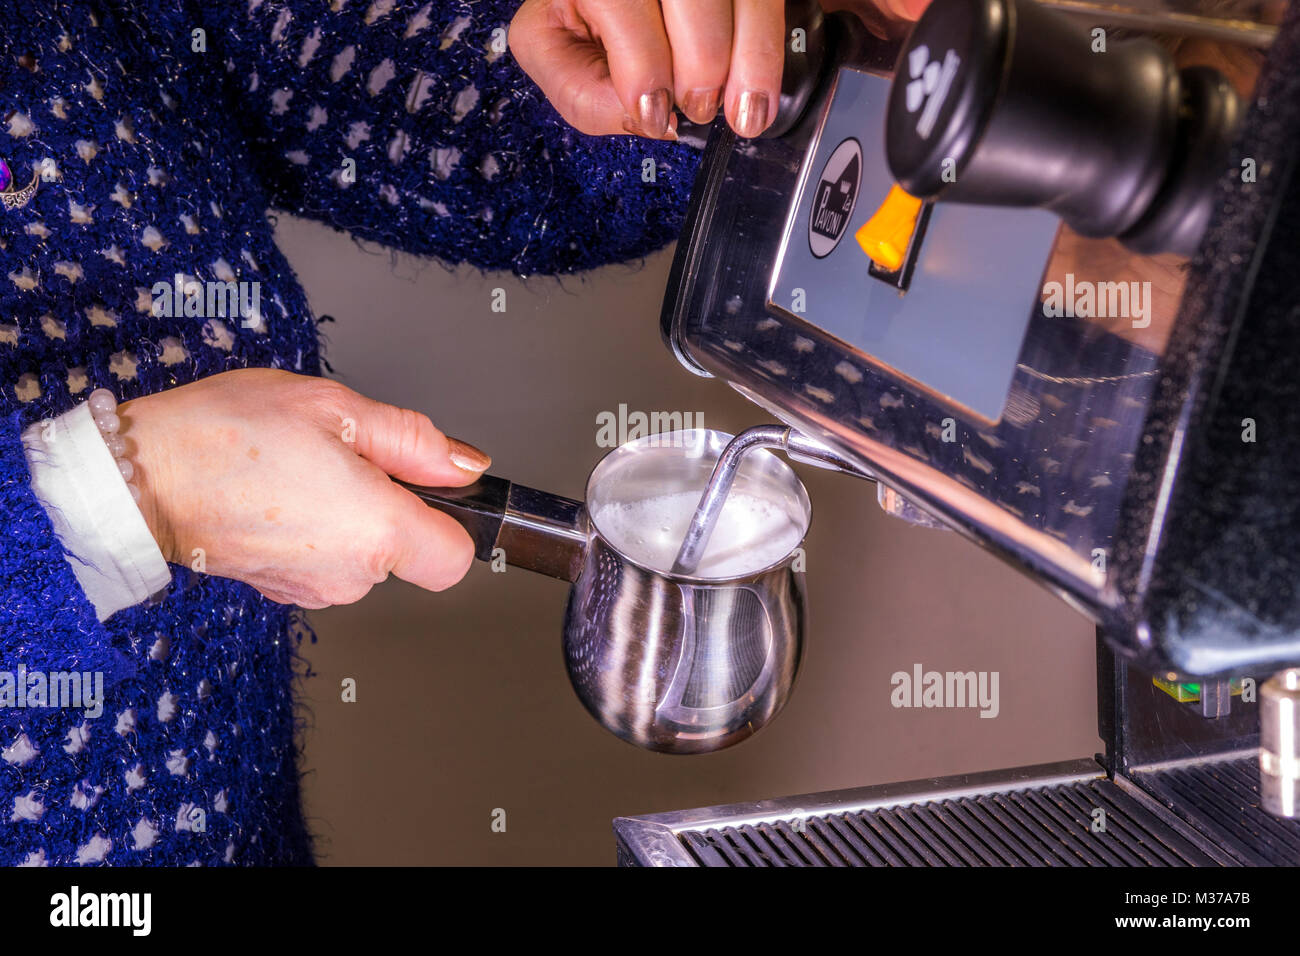 Woman's hand holding a stainless steel milk frothing jug, under the steam / steaming wand of a commercial espresso - Stock Image